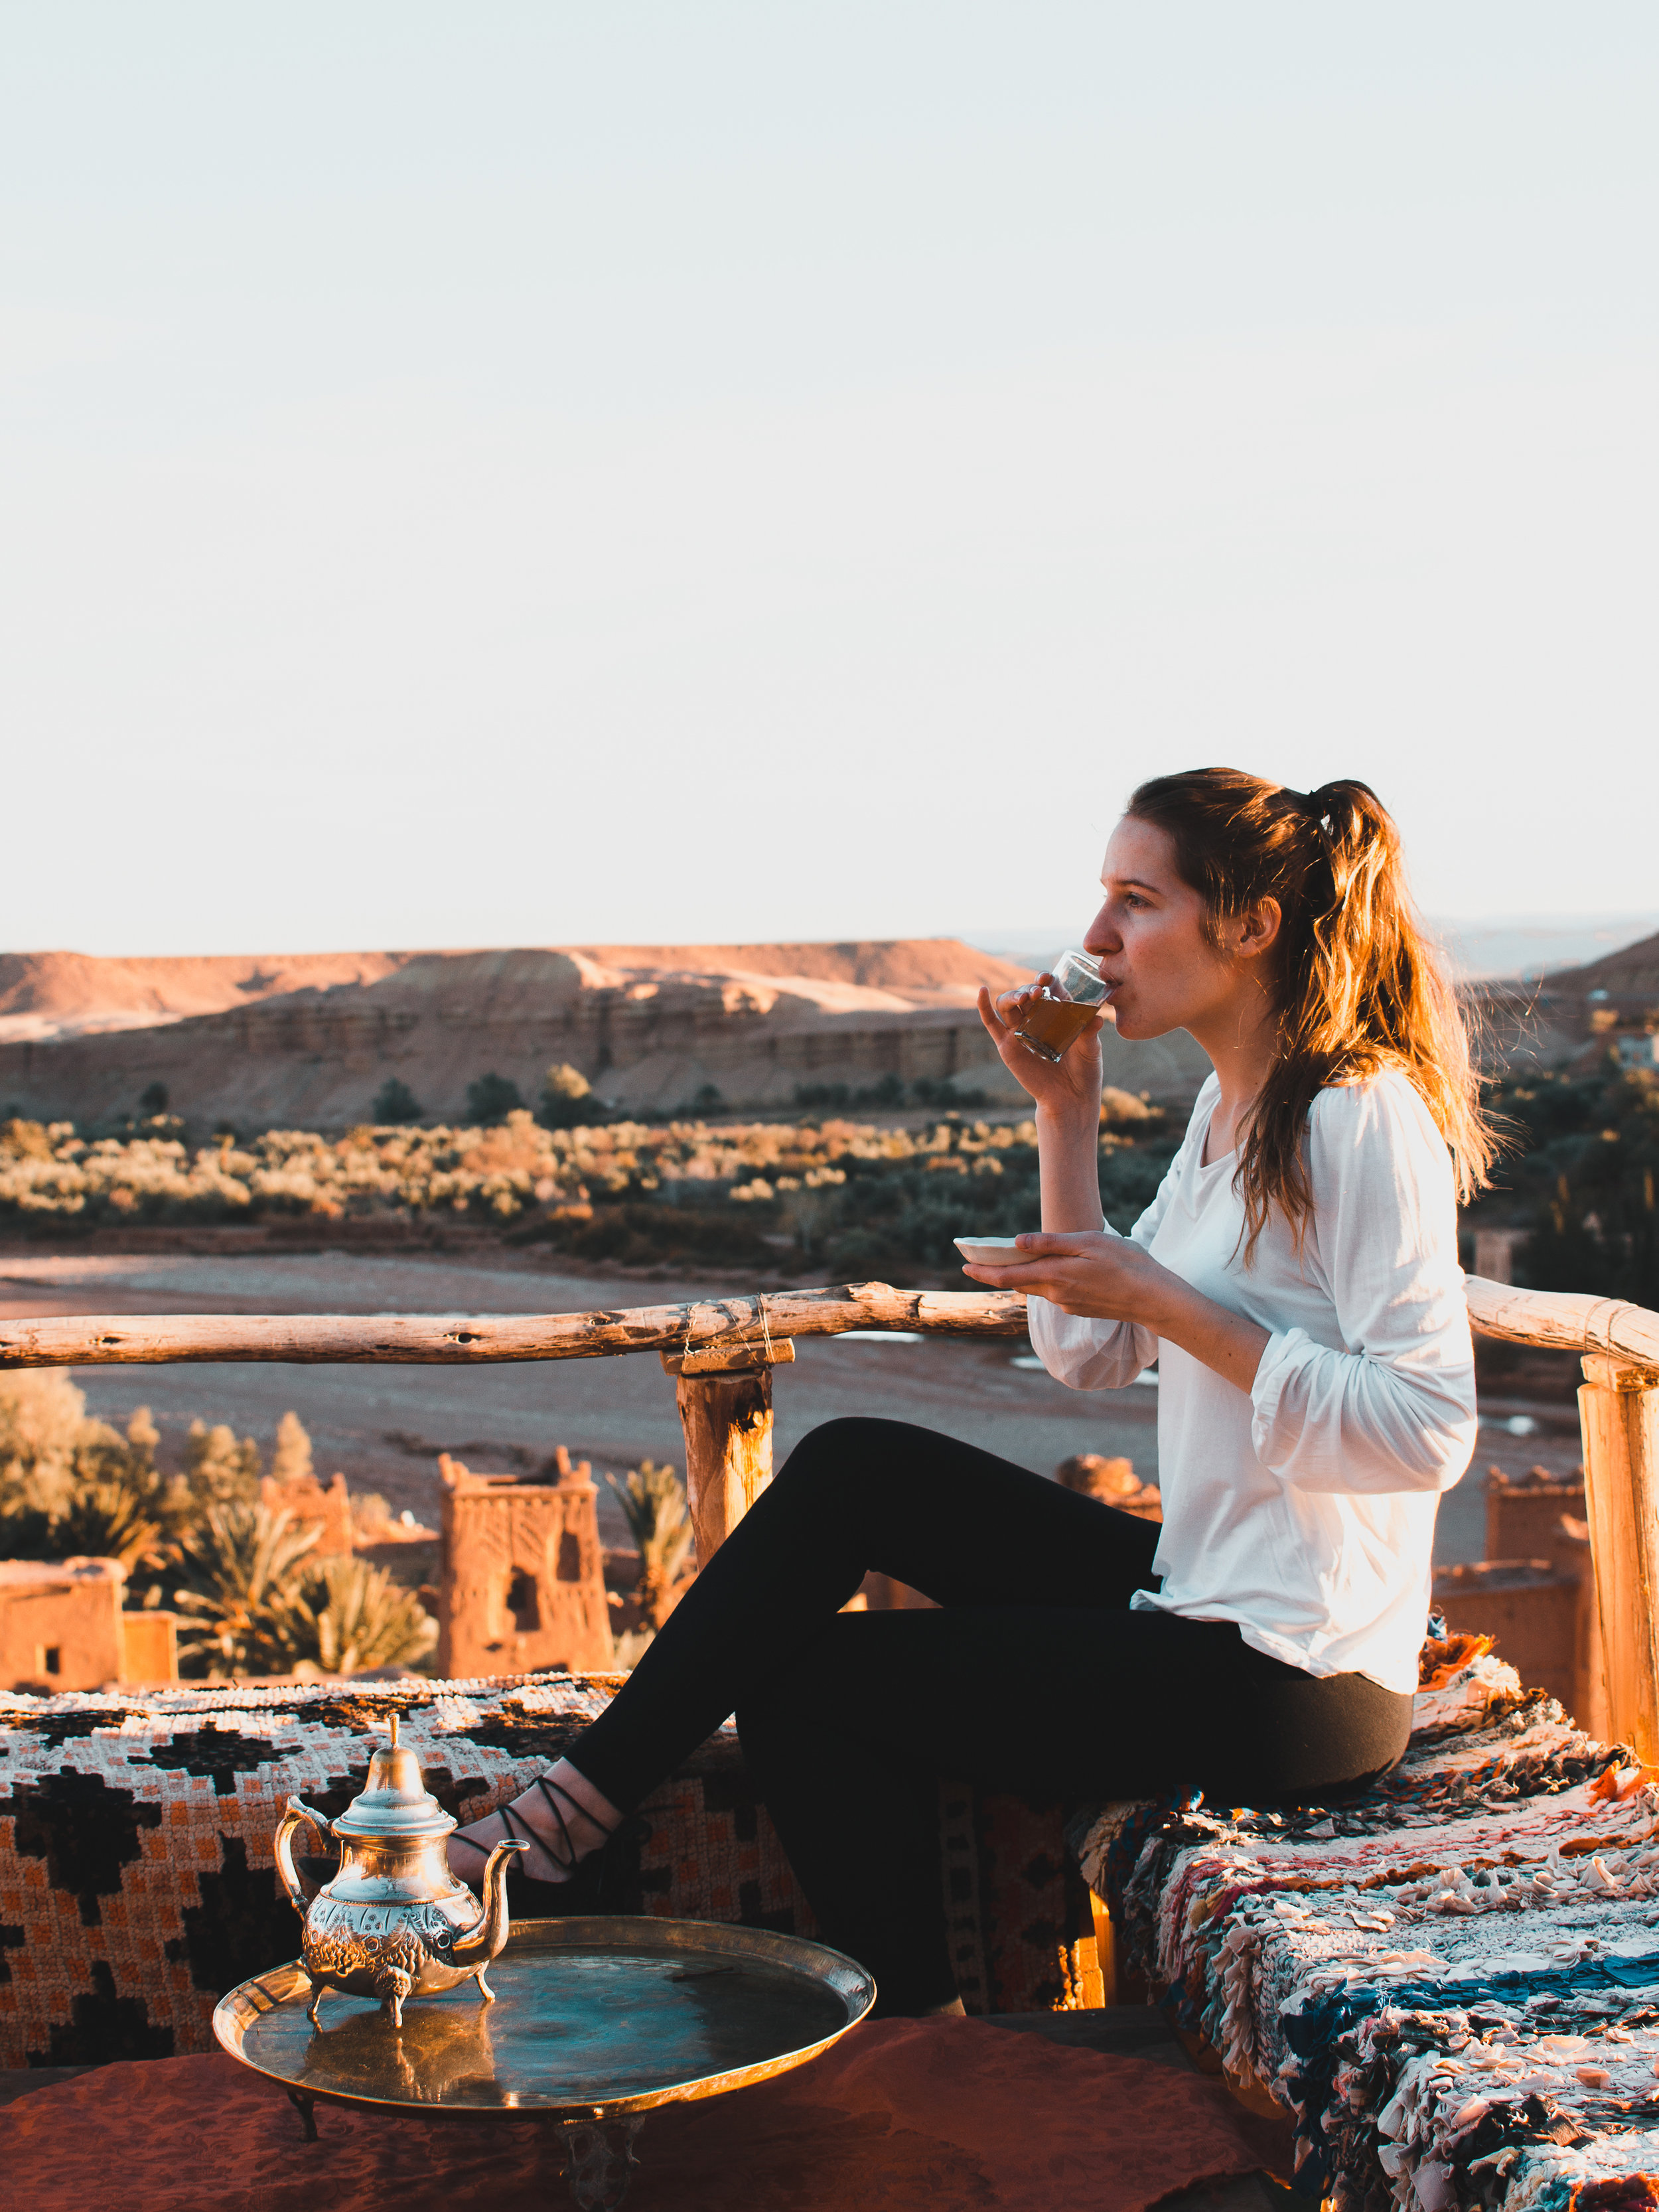 Sipping mint tea on top of Ait Benhaddou in Morocco